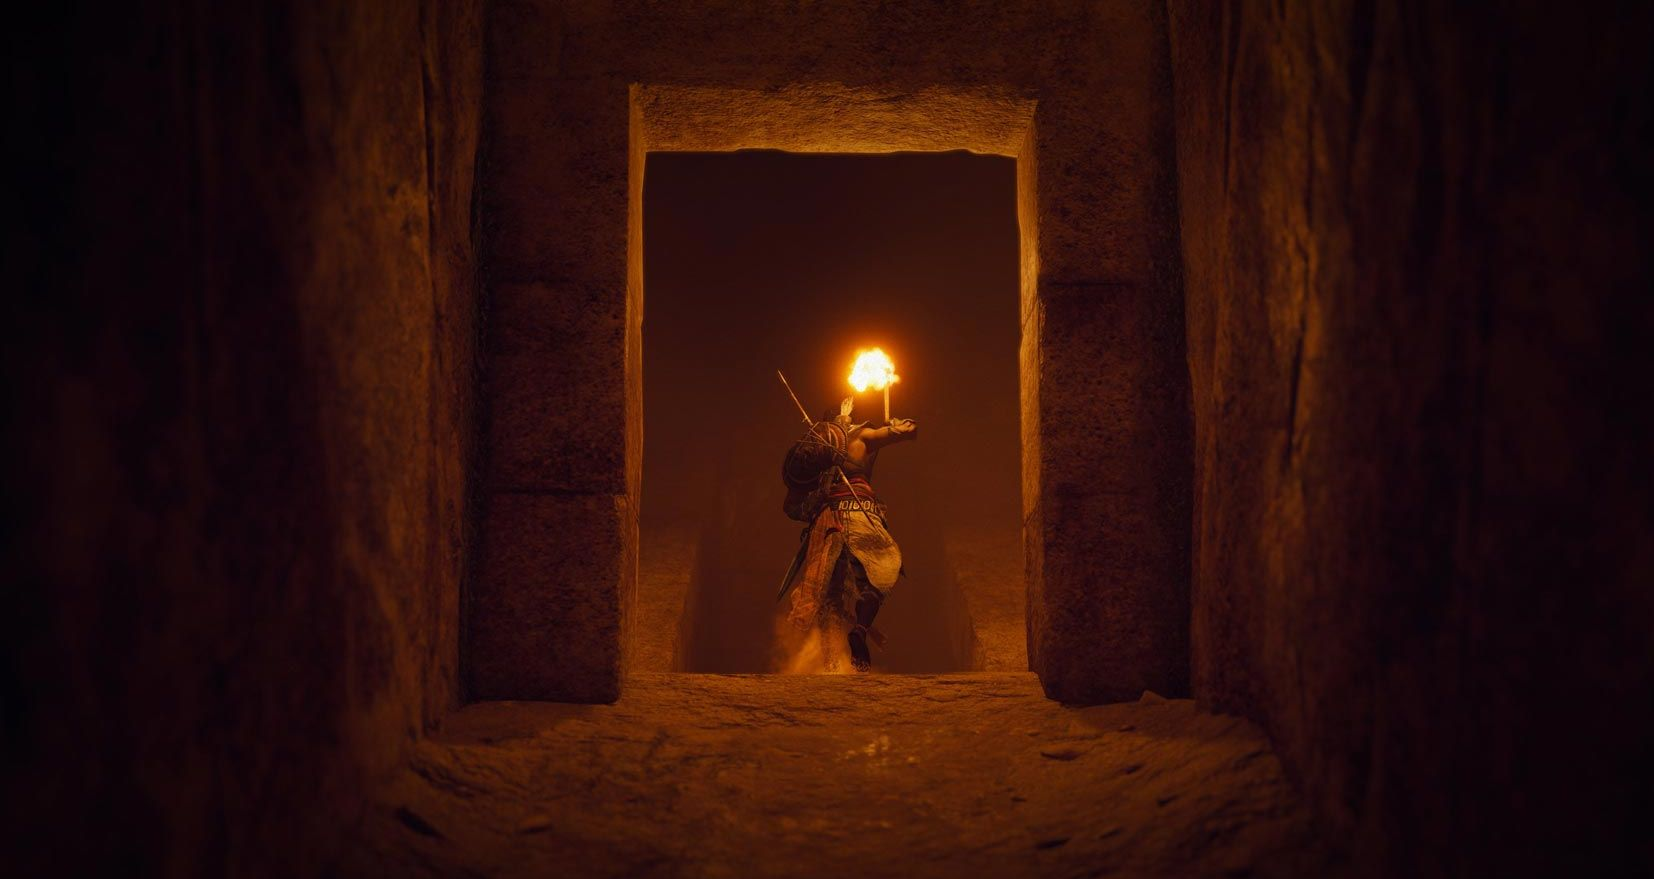 Assassin's Creed: Origins Will Get a New Game Plus Mode